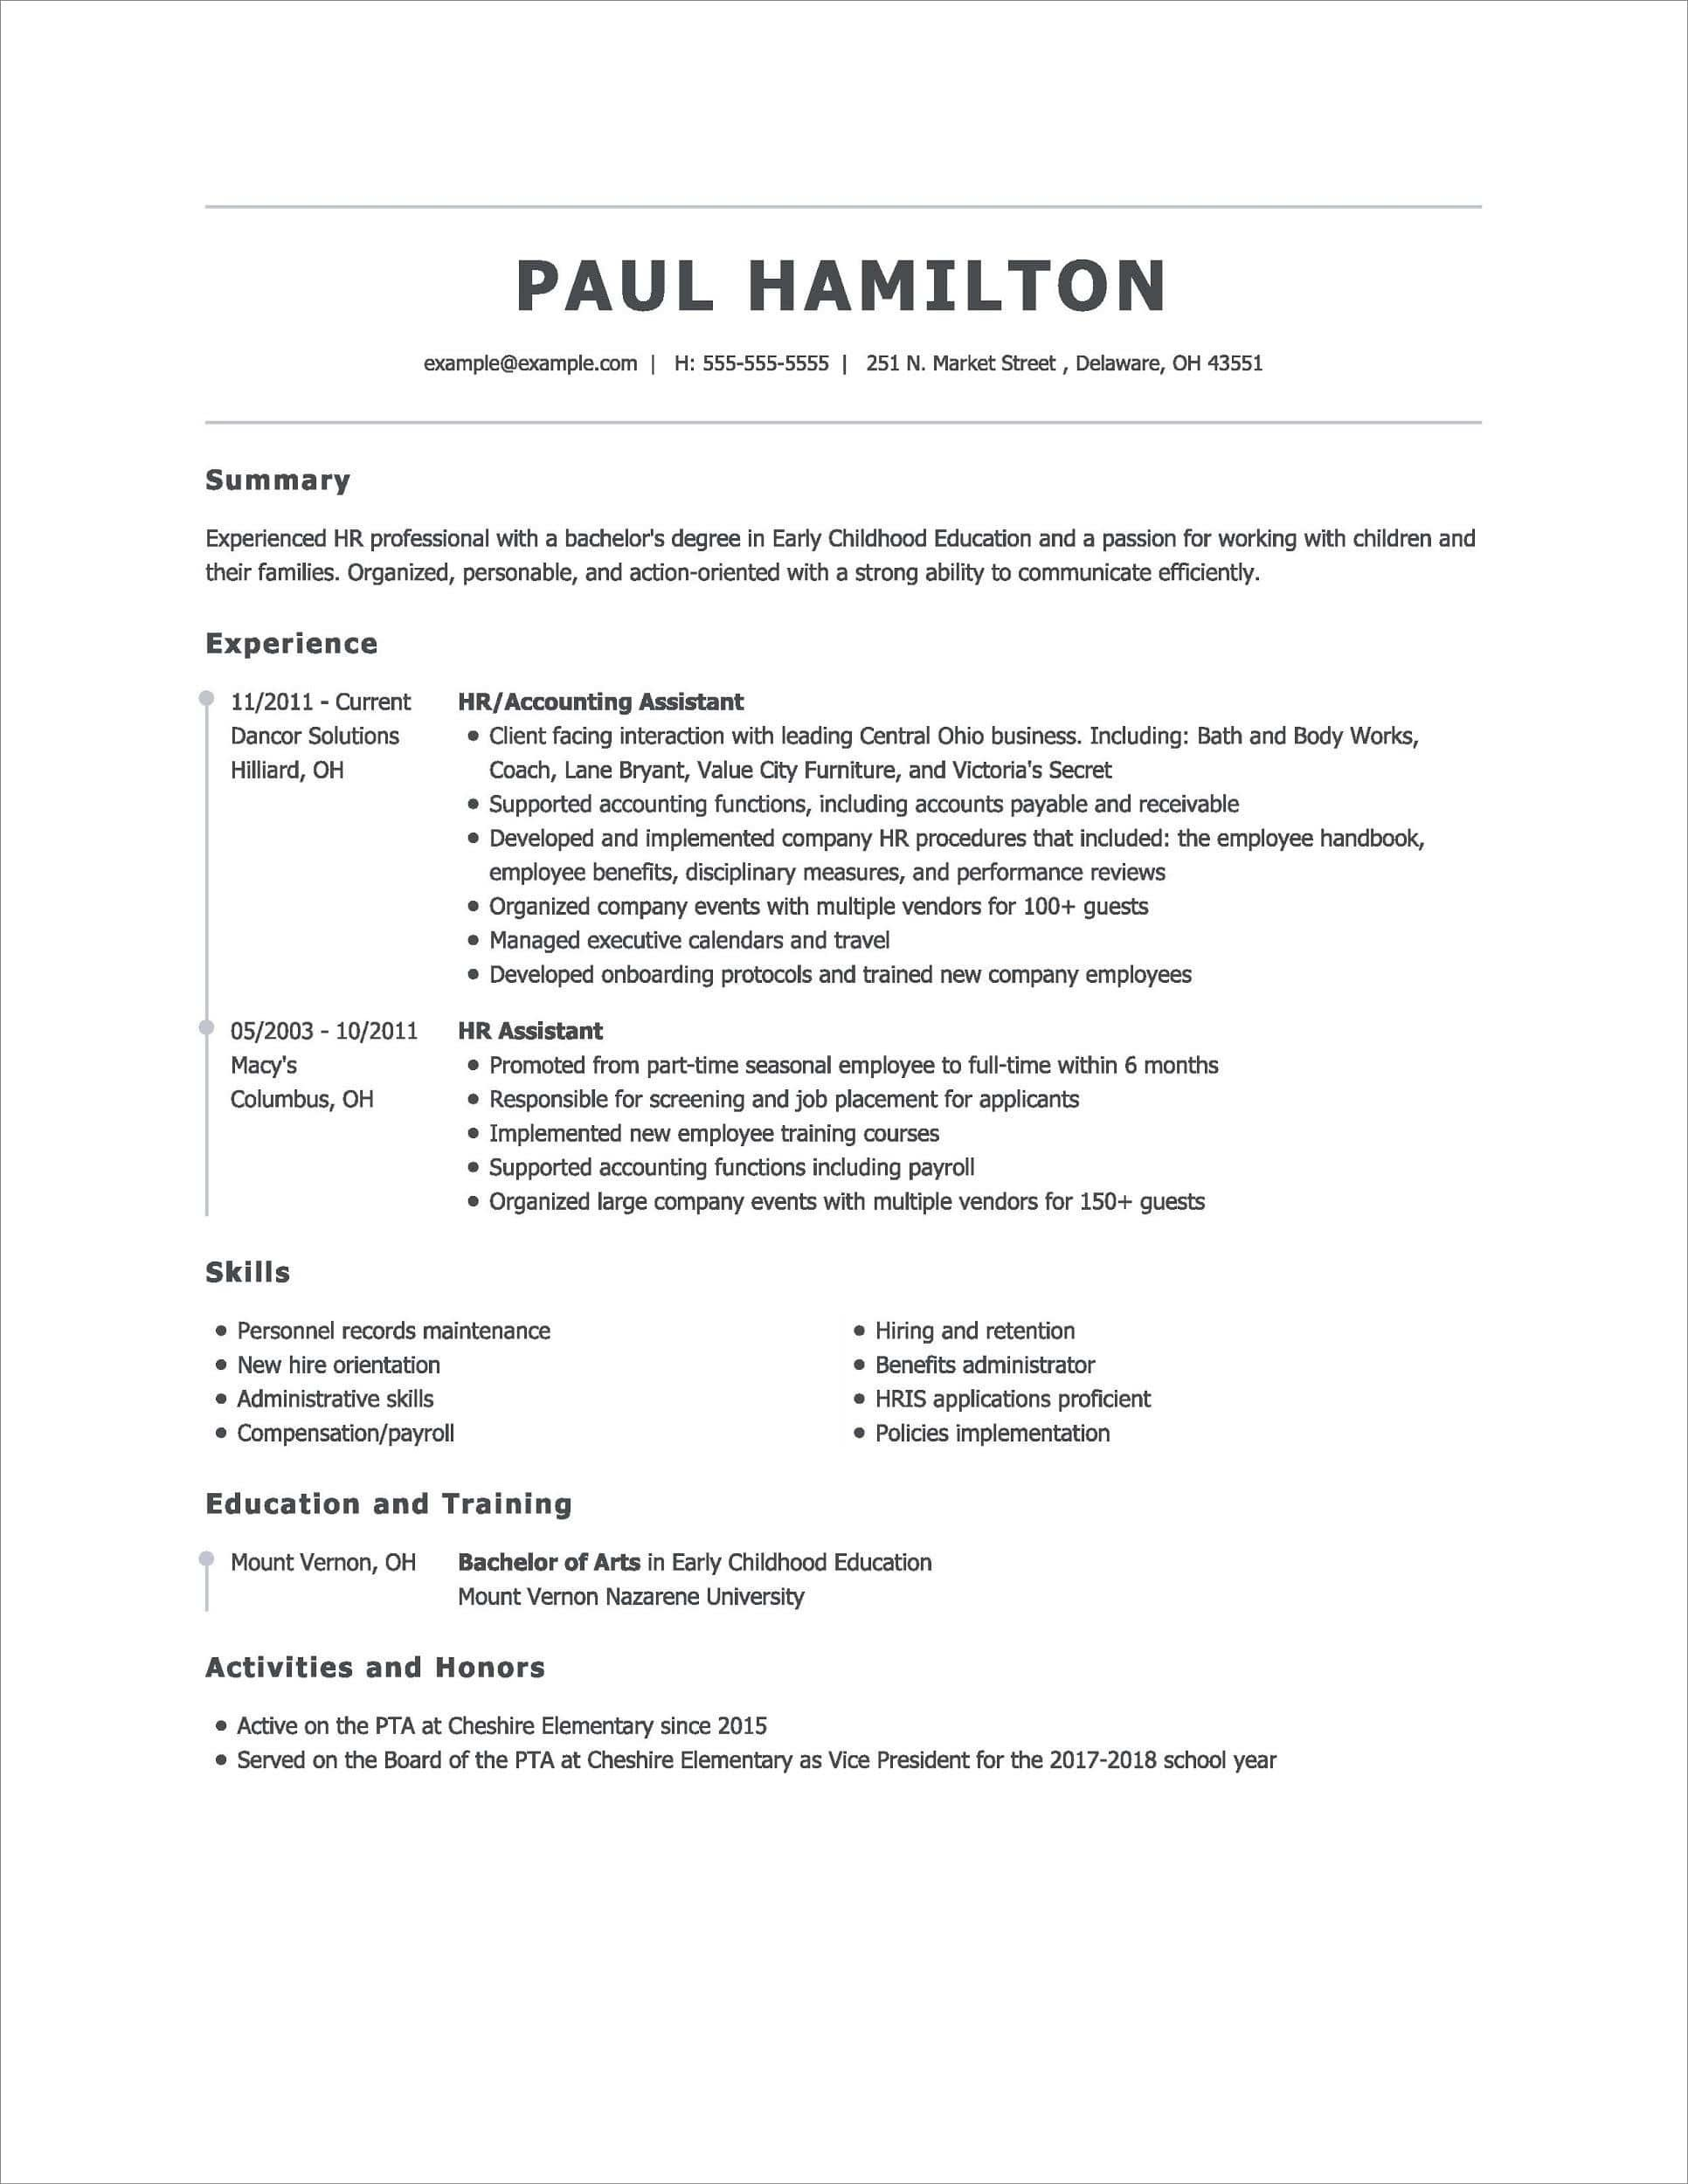 best resume builders free paid features builder for its professional fbi core Resume Free Resume Builder For Its Professional